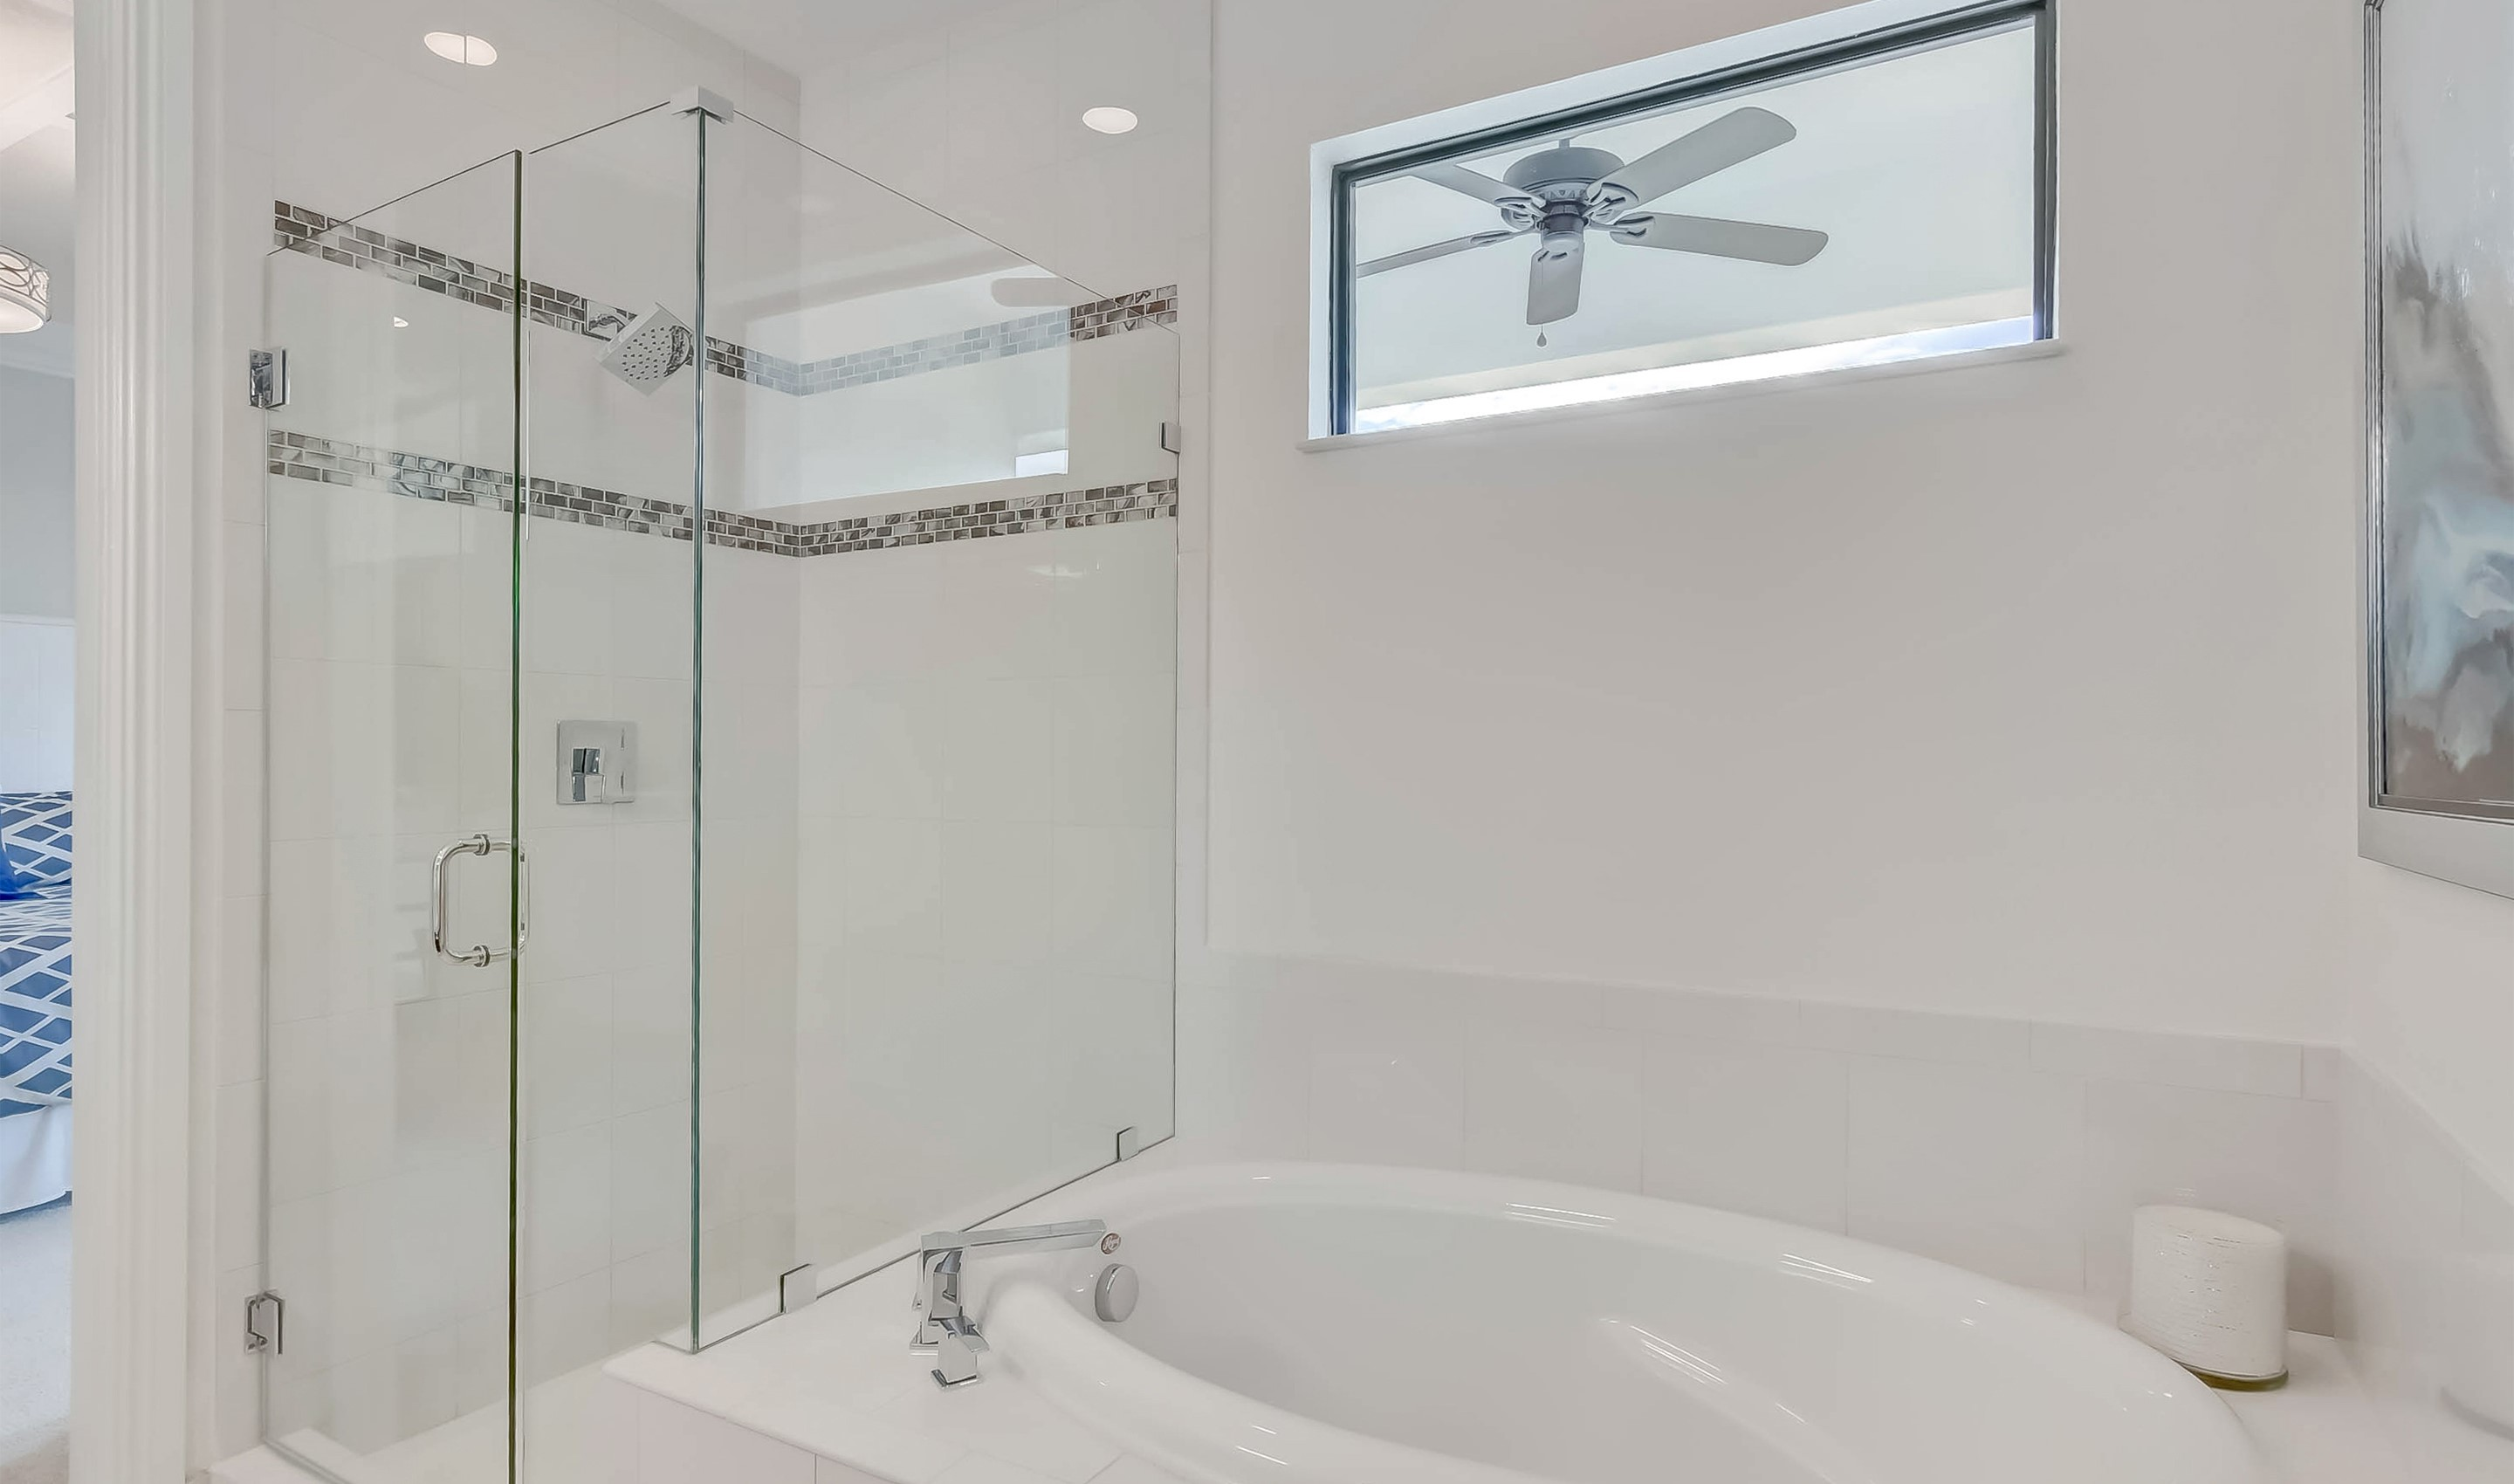 Owner's bath tub and shower